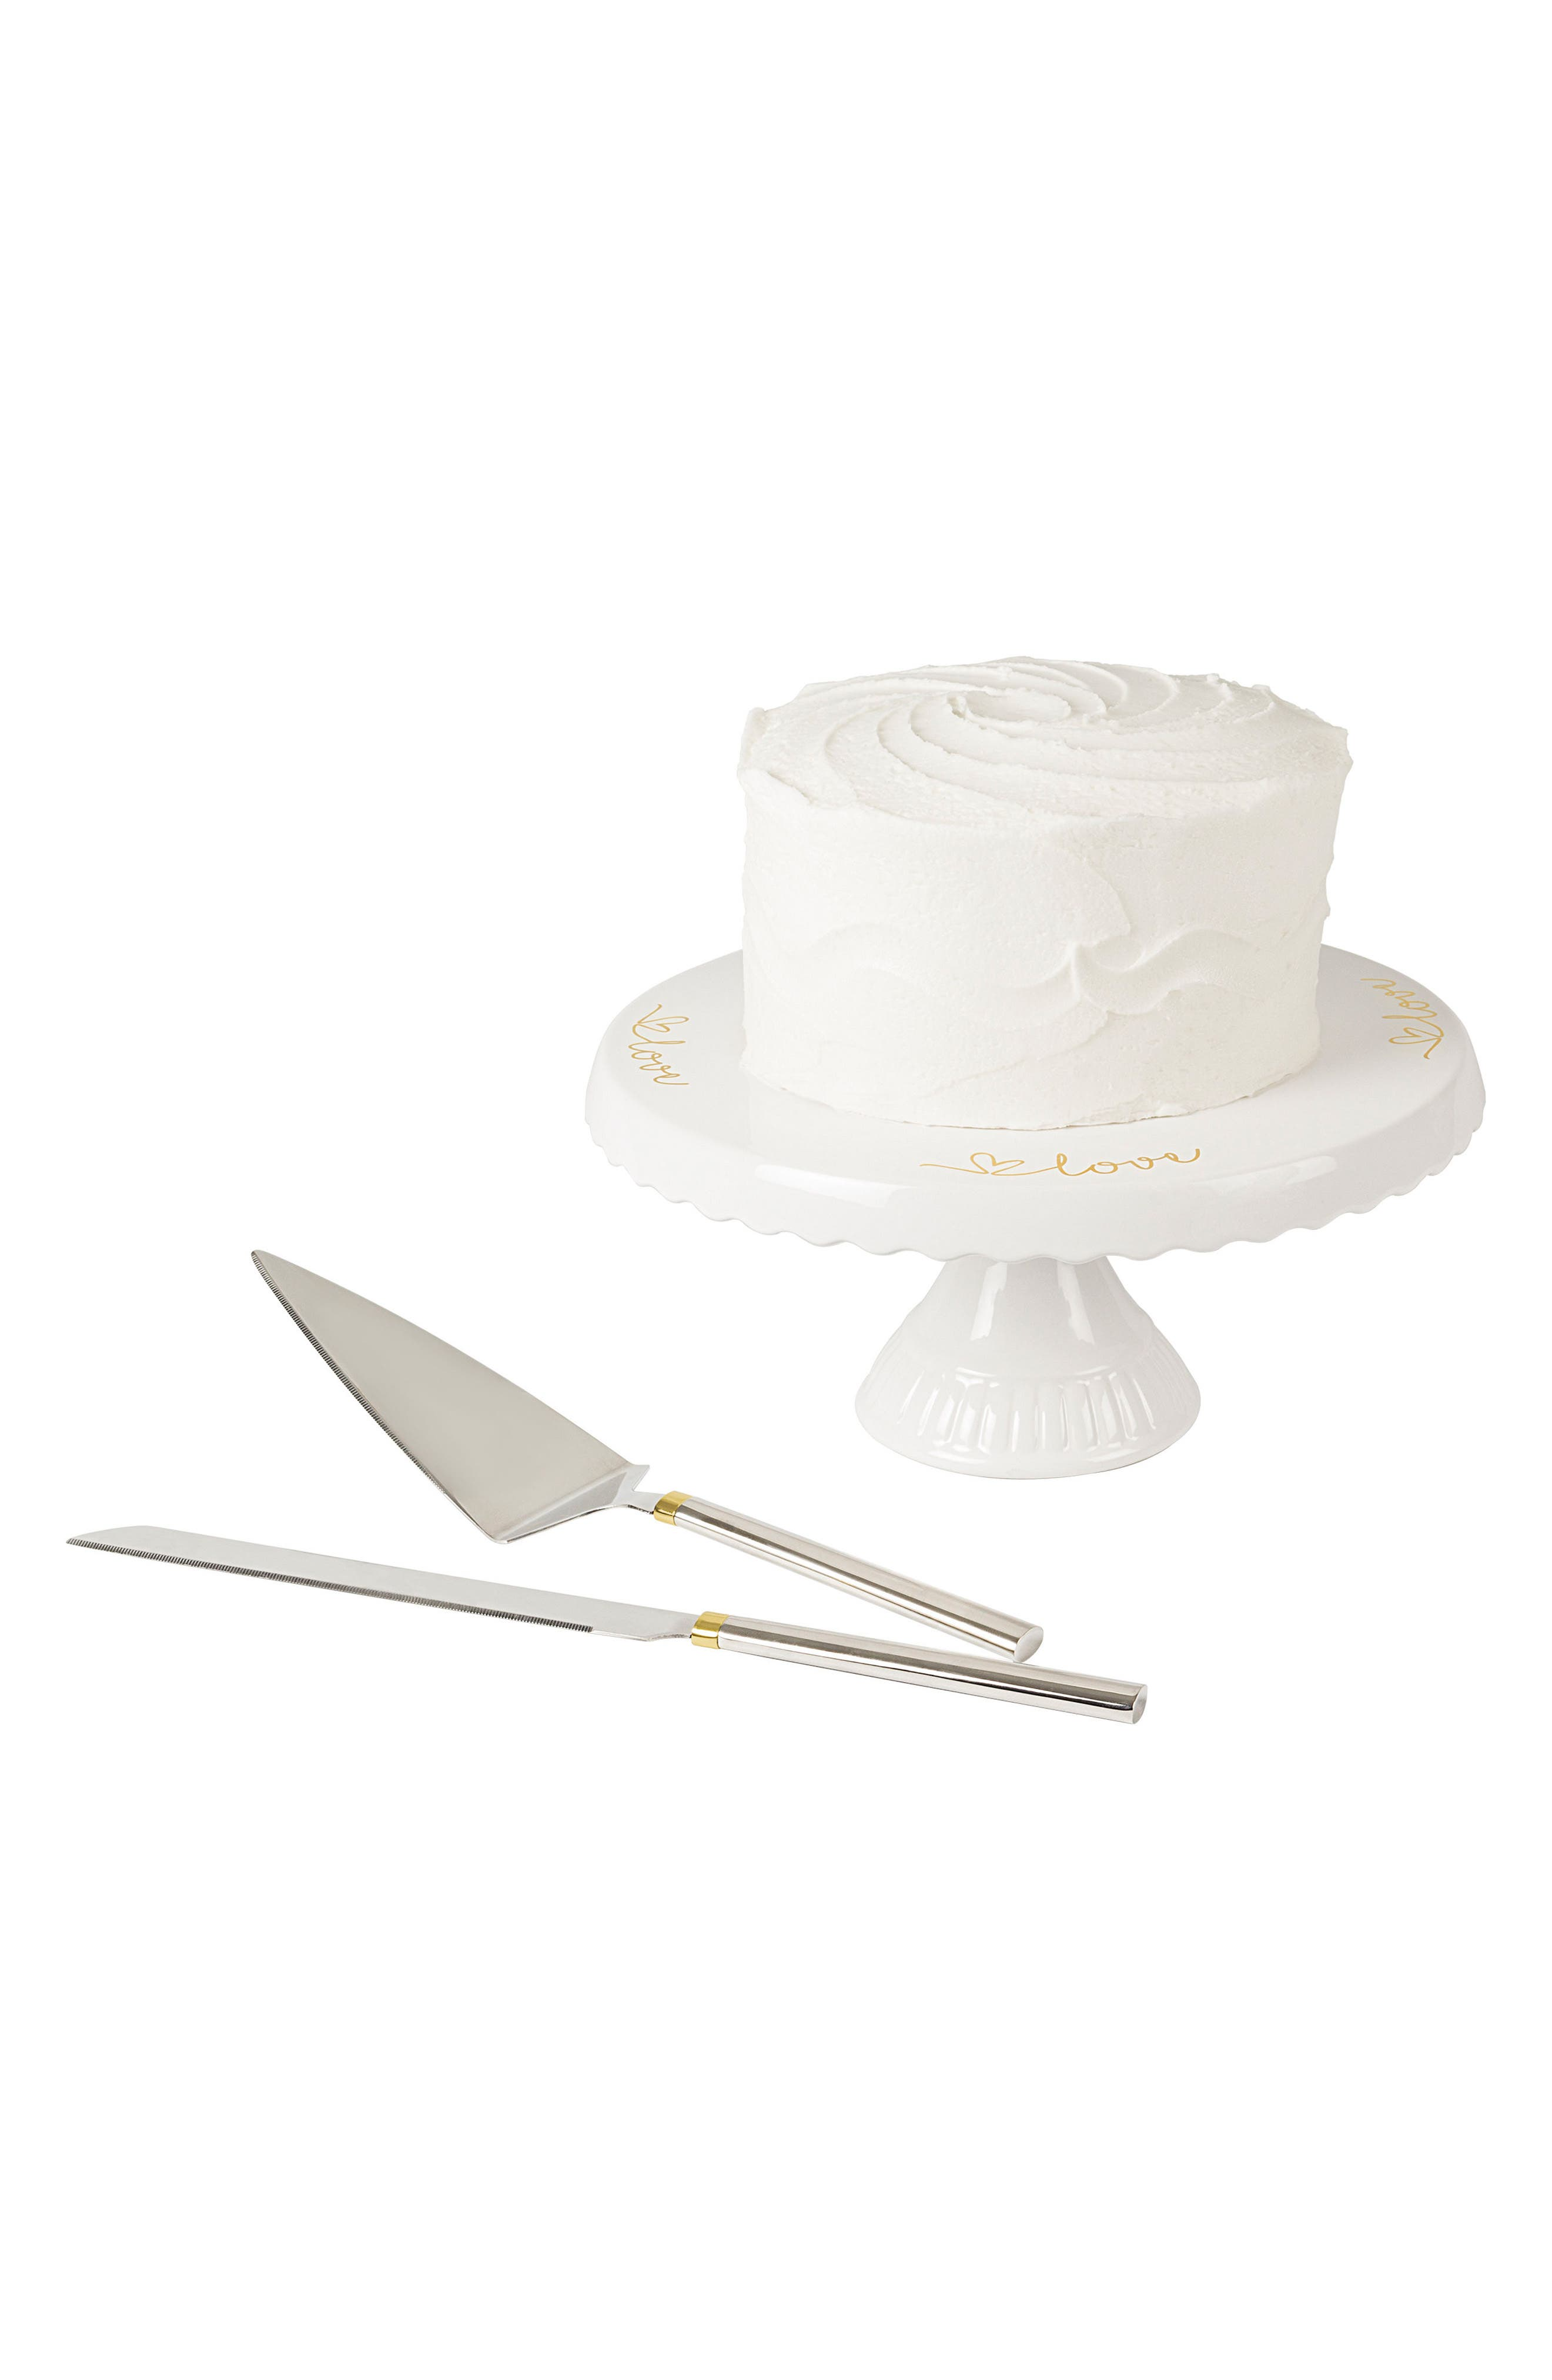 Love Monogram Cake Stand & Server Set,                             Main thumbnail 1, color,